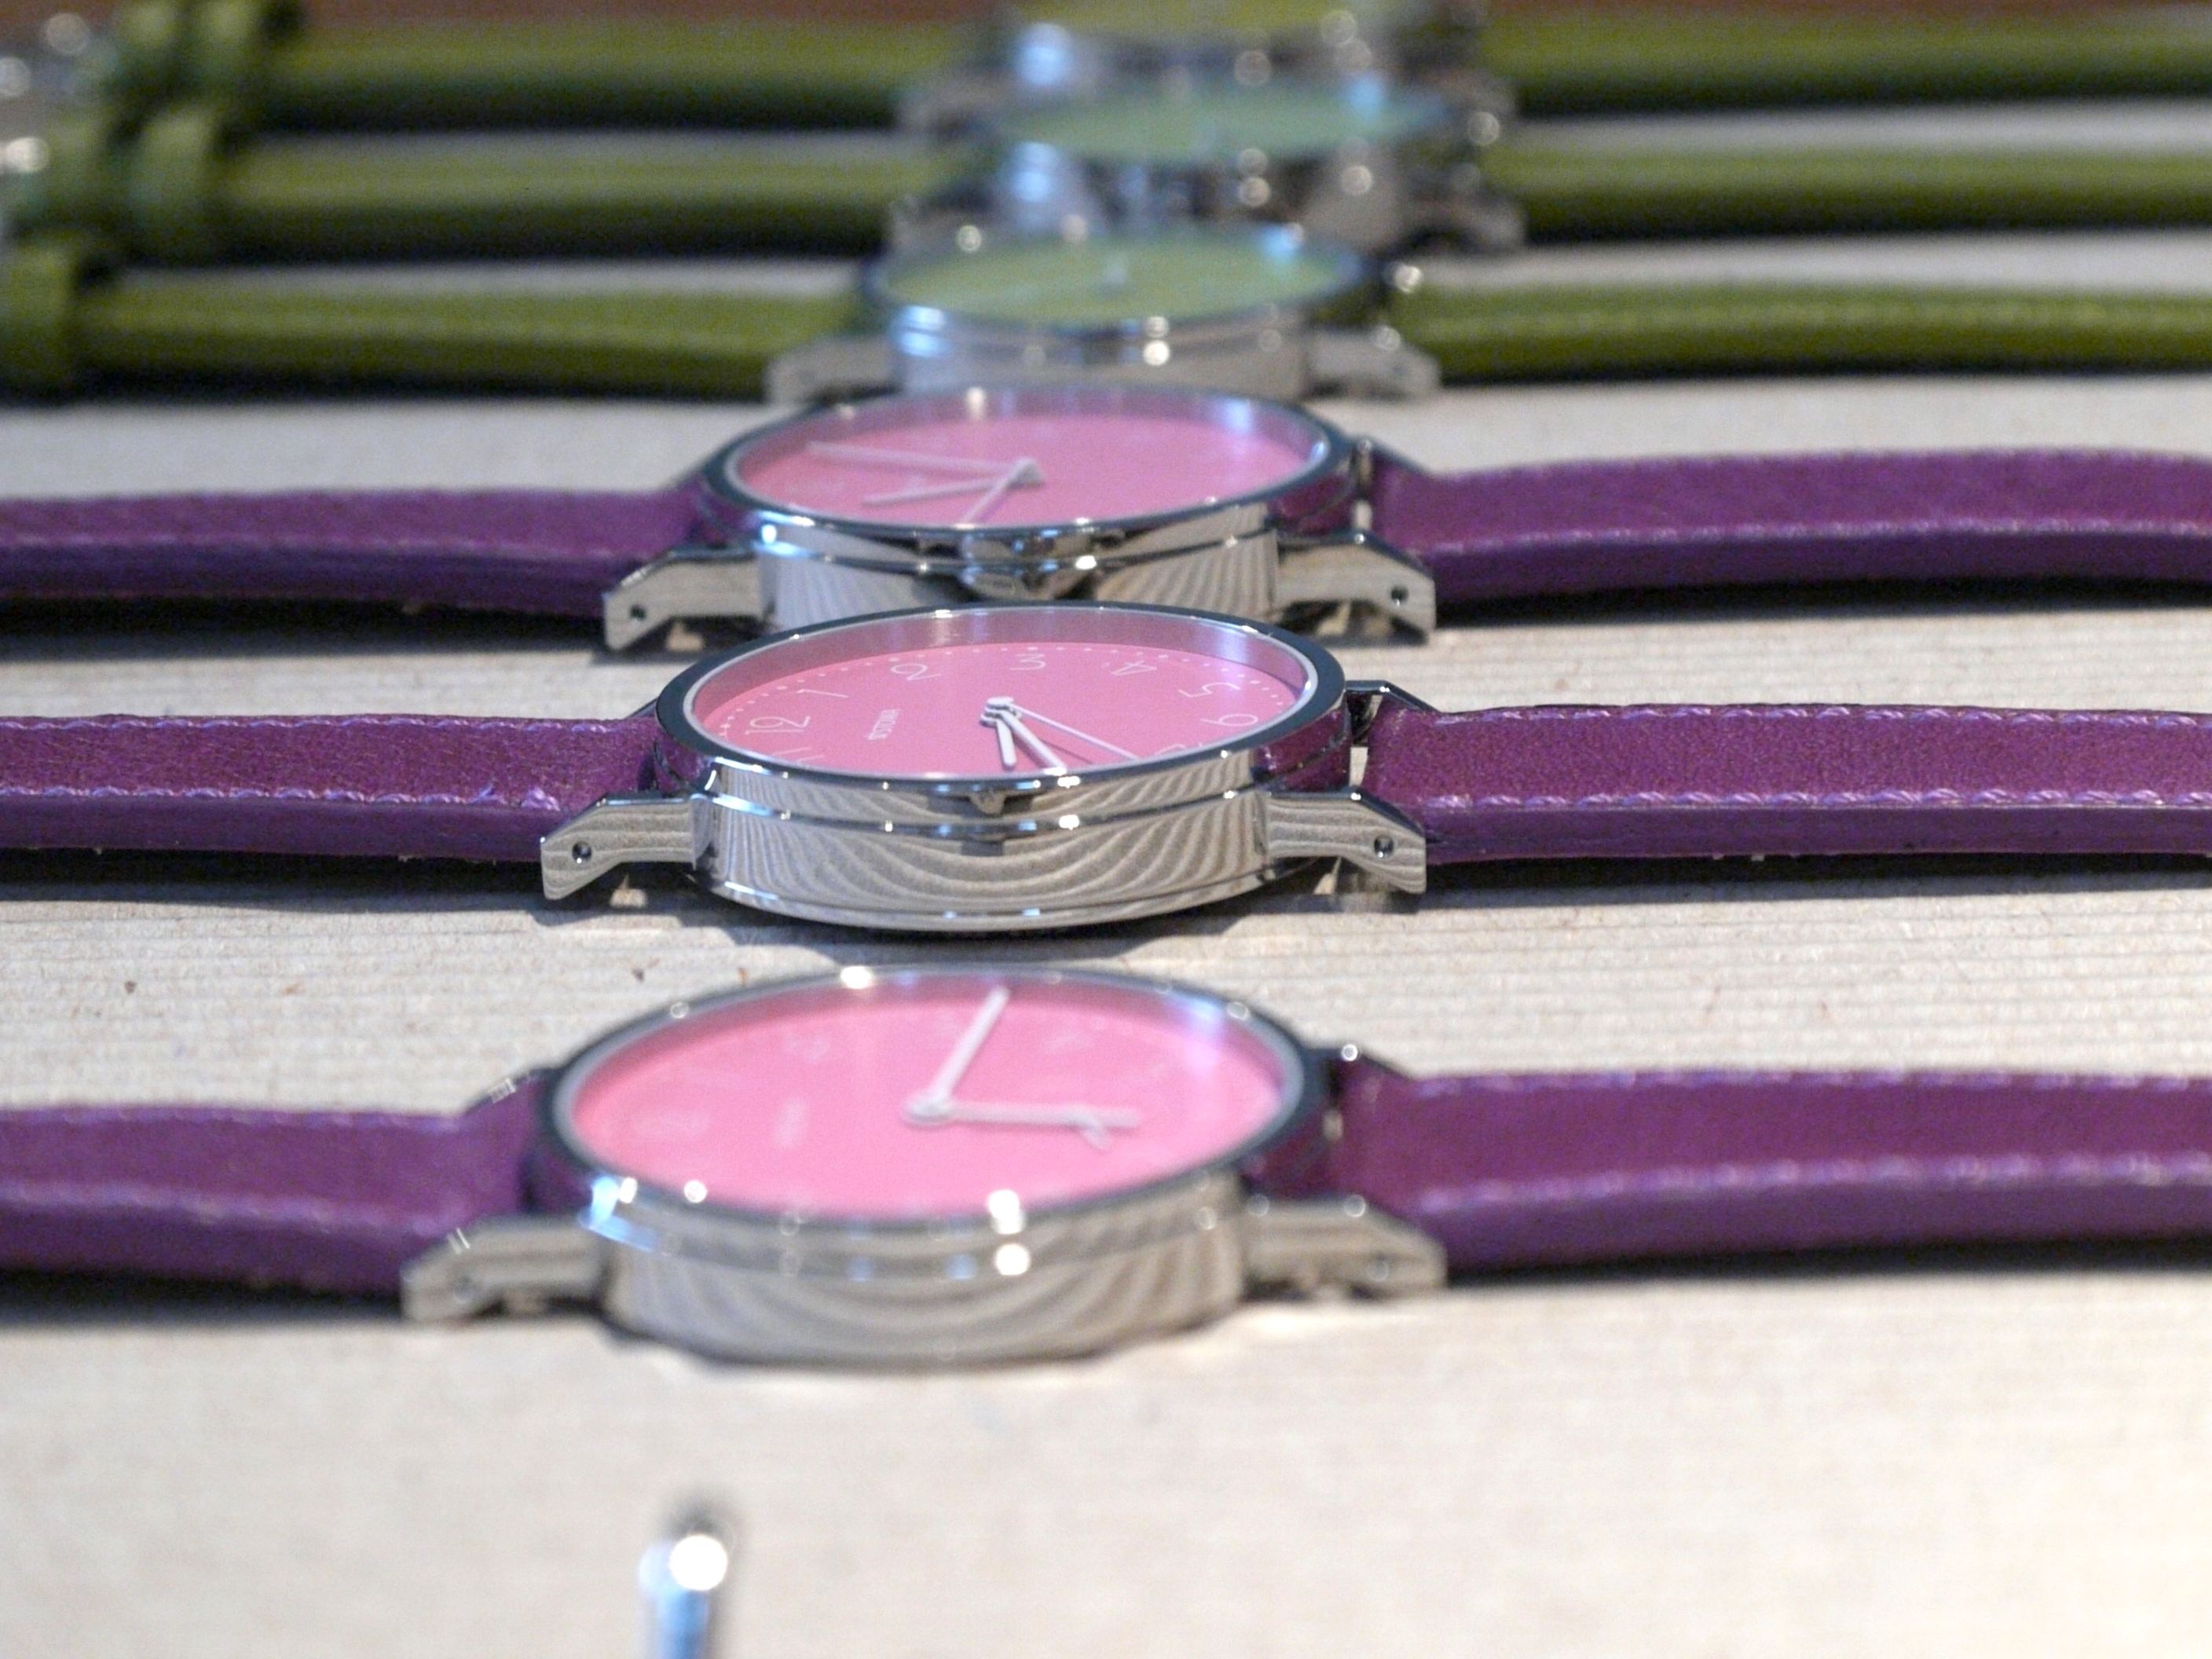 There were also several options for ladies watches